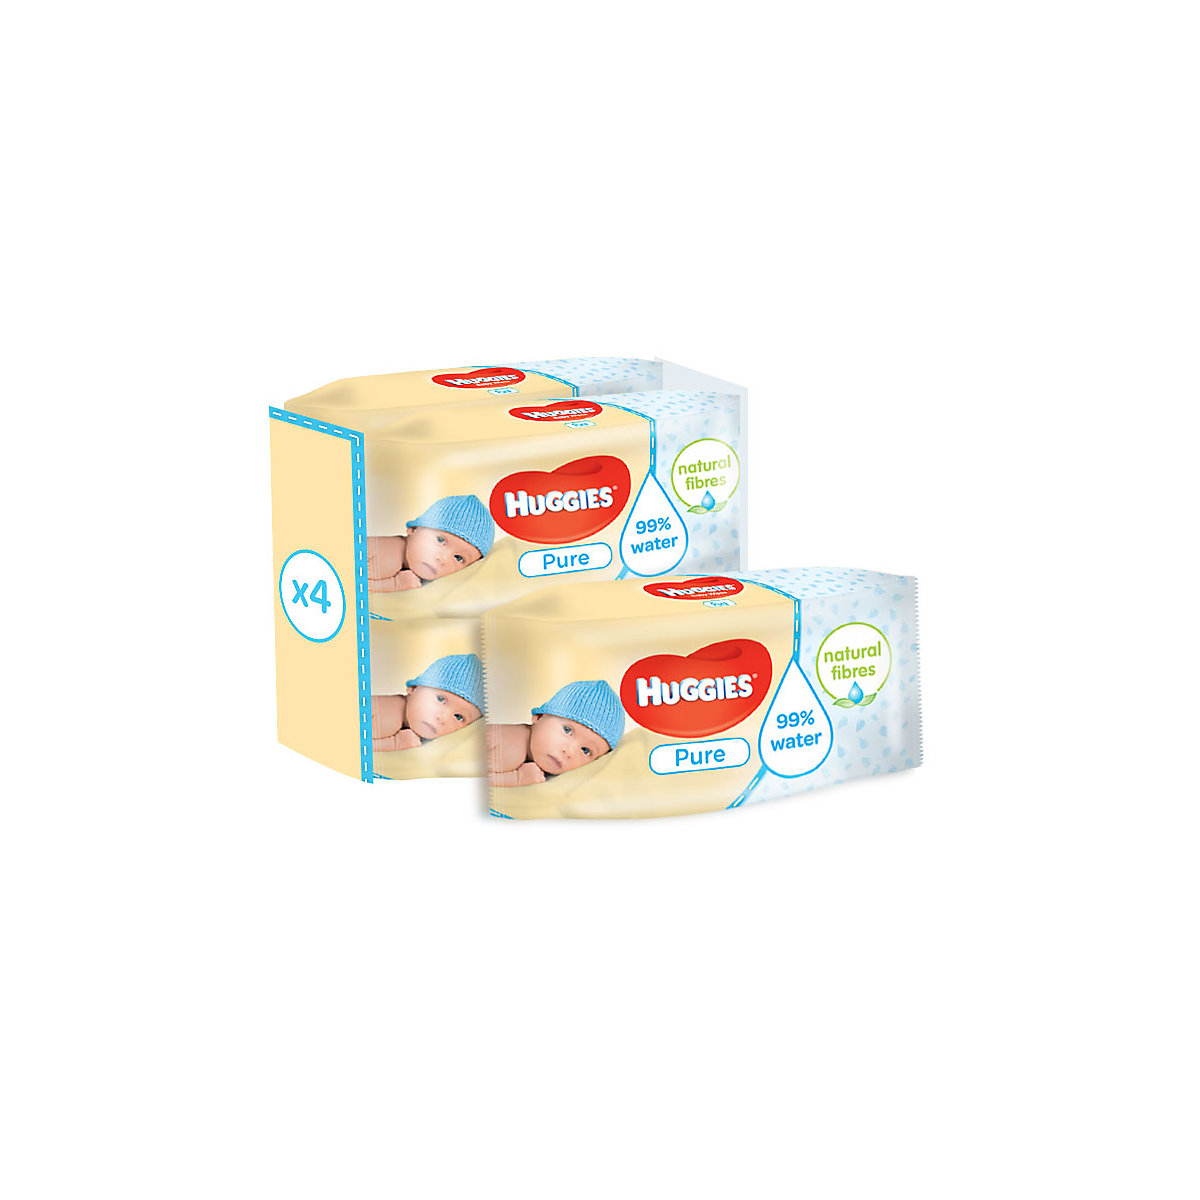 Huggies pure wipes - 4 x 56 pack